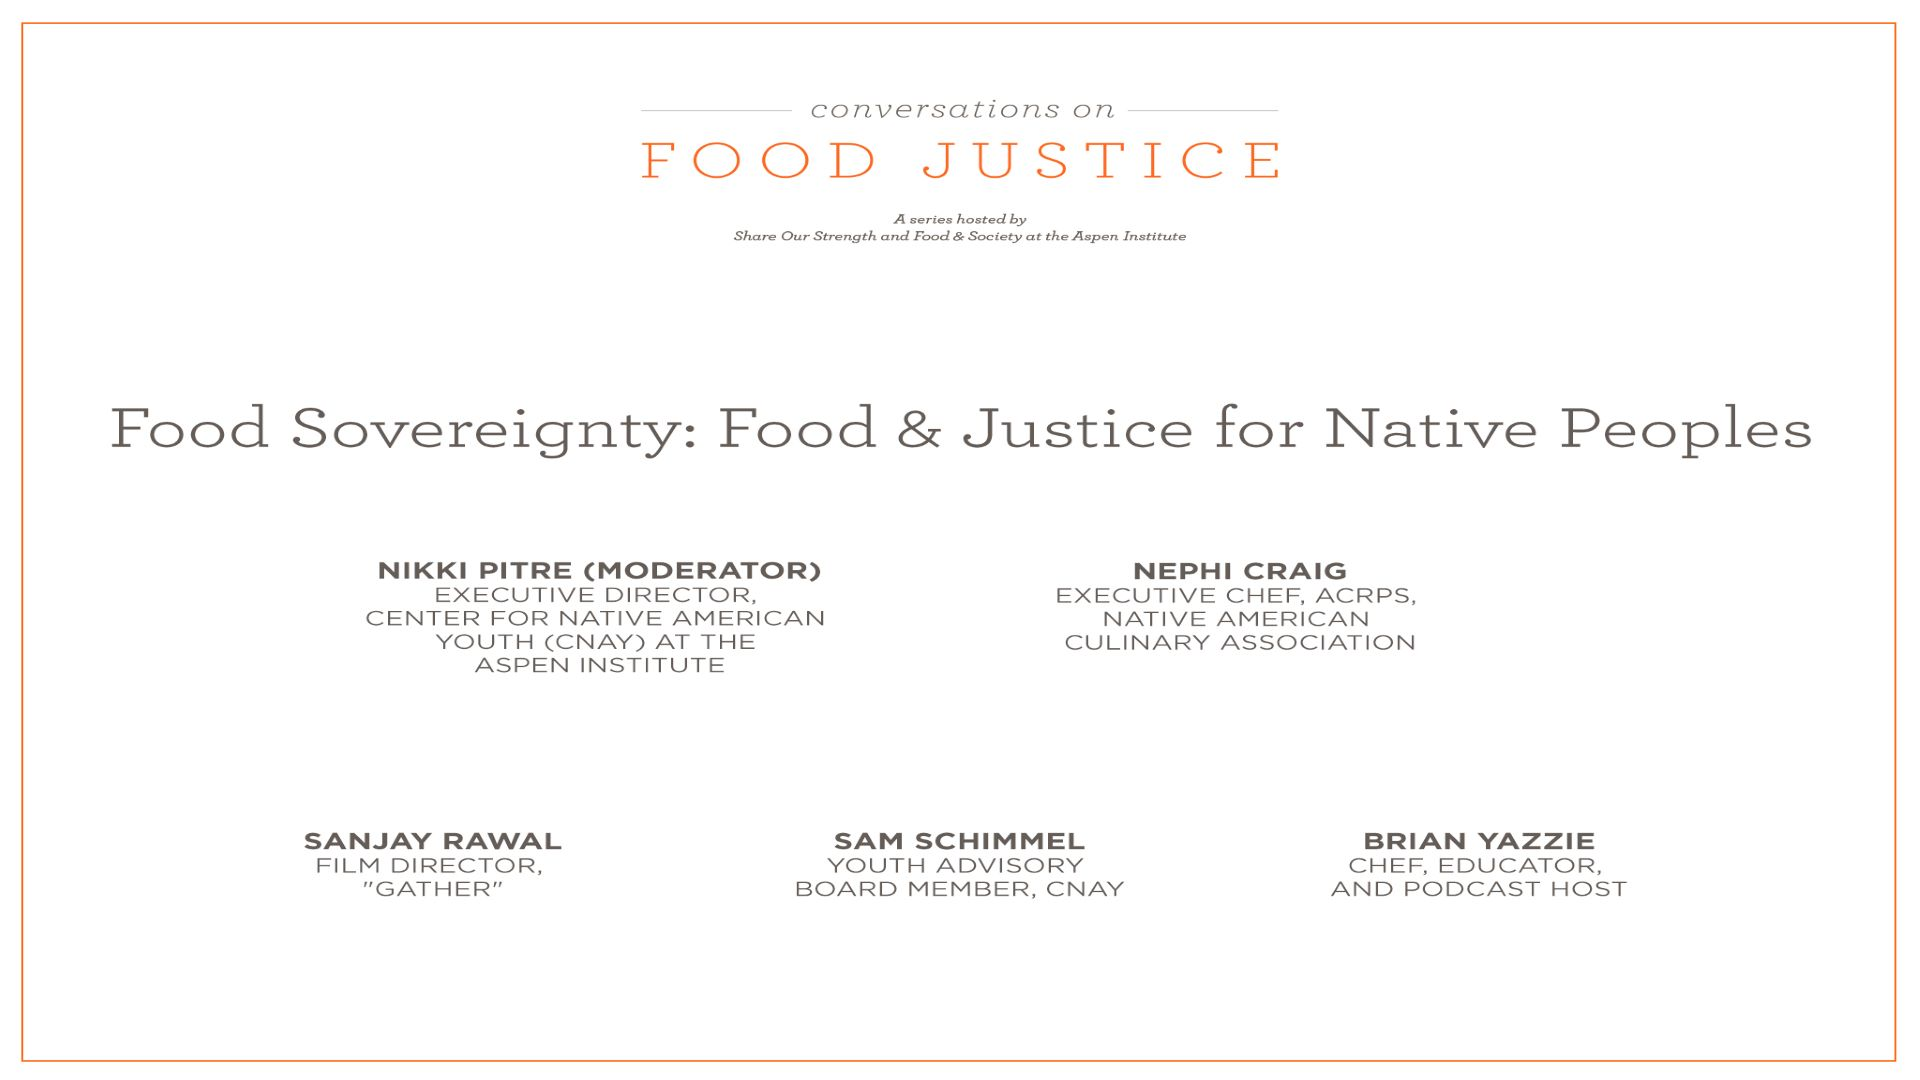 Food and Justice for Native Peoples